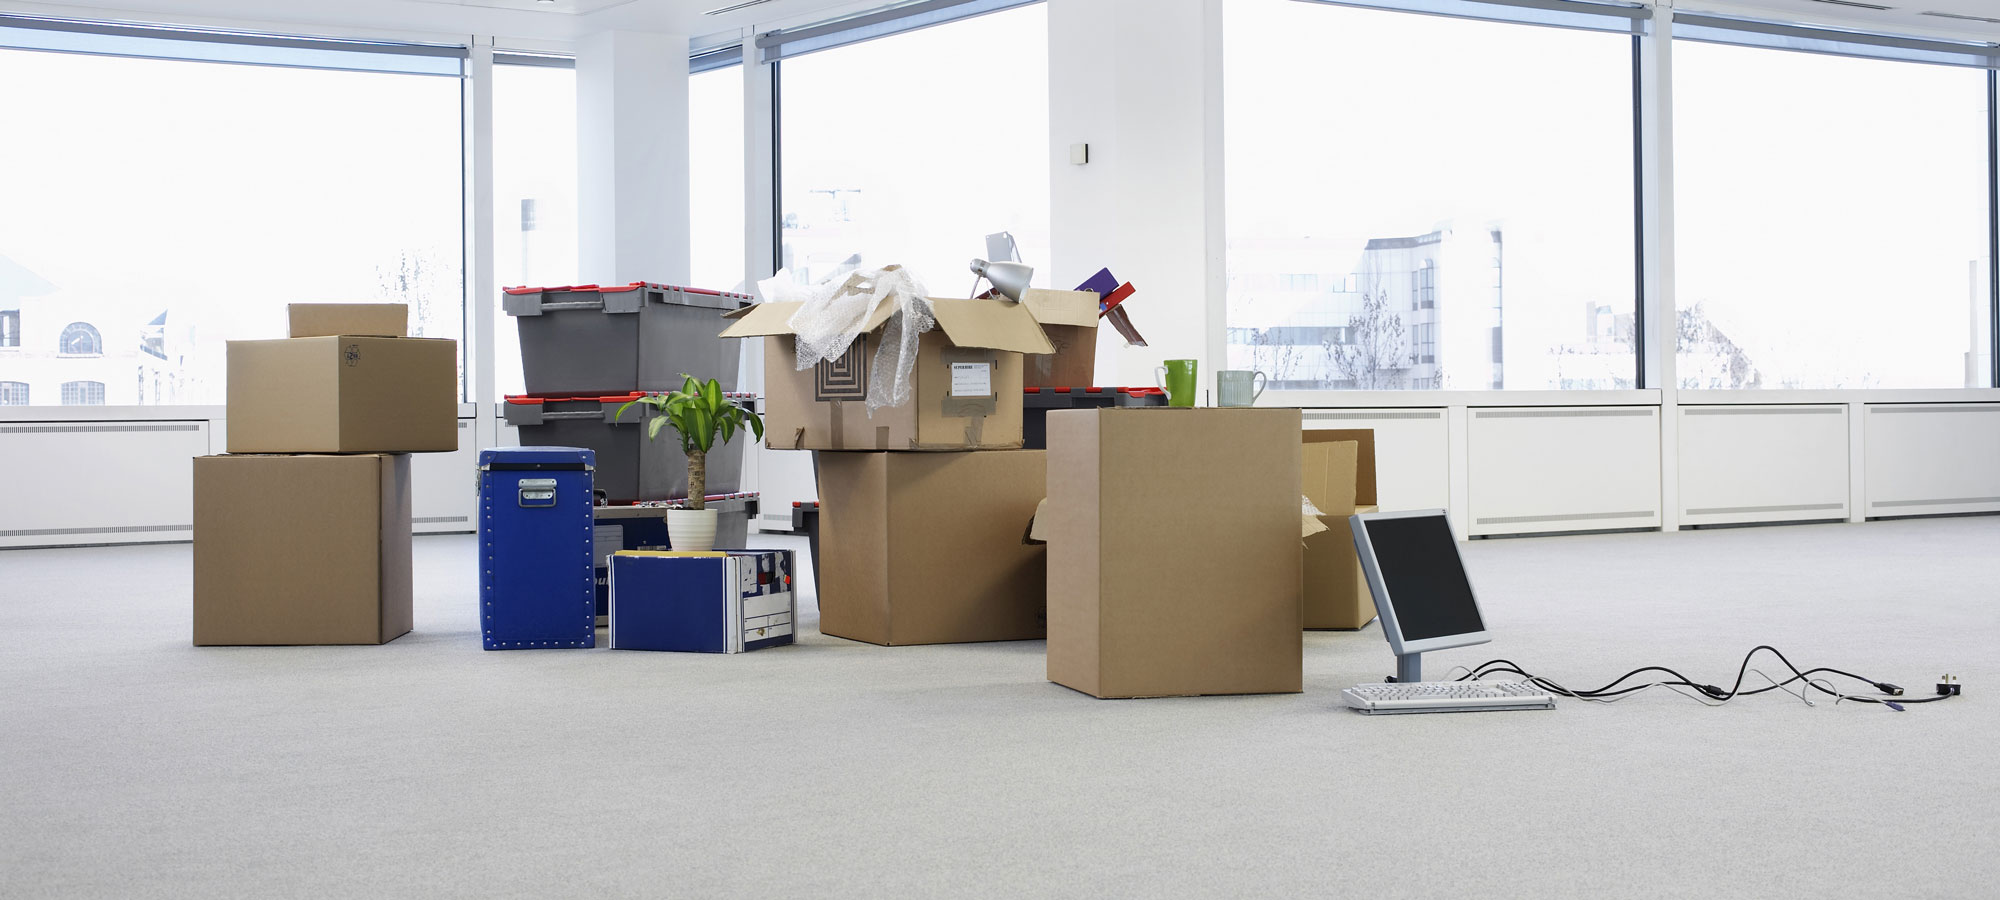 Boxes-in-an-Empty-Office